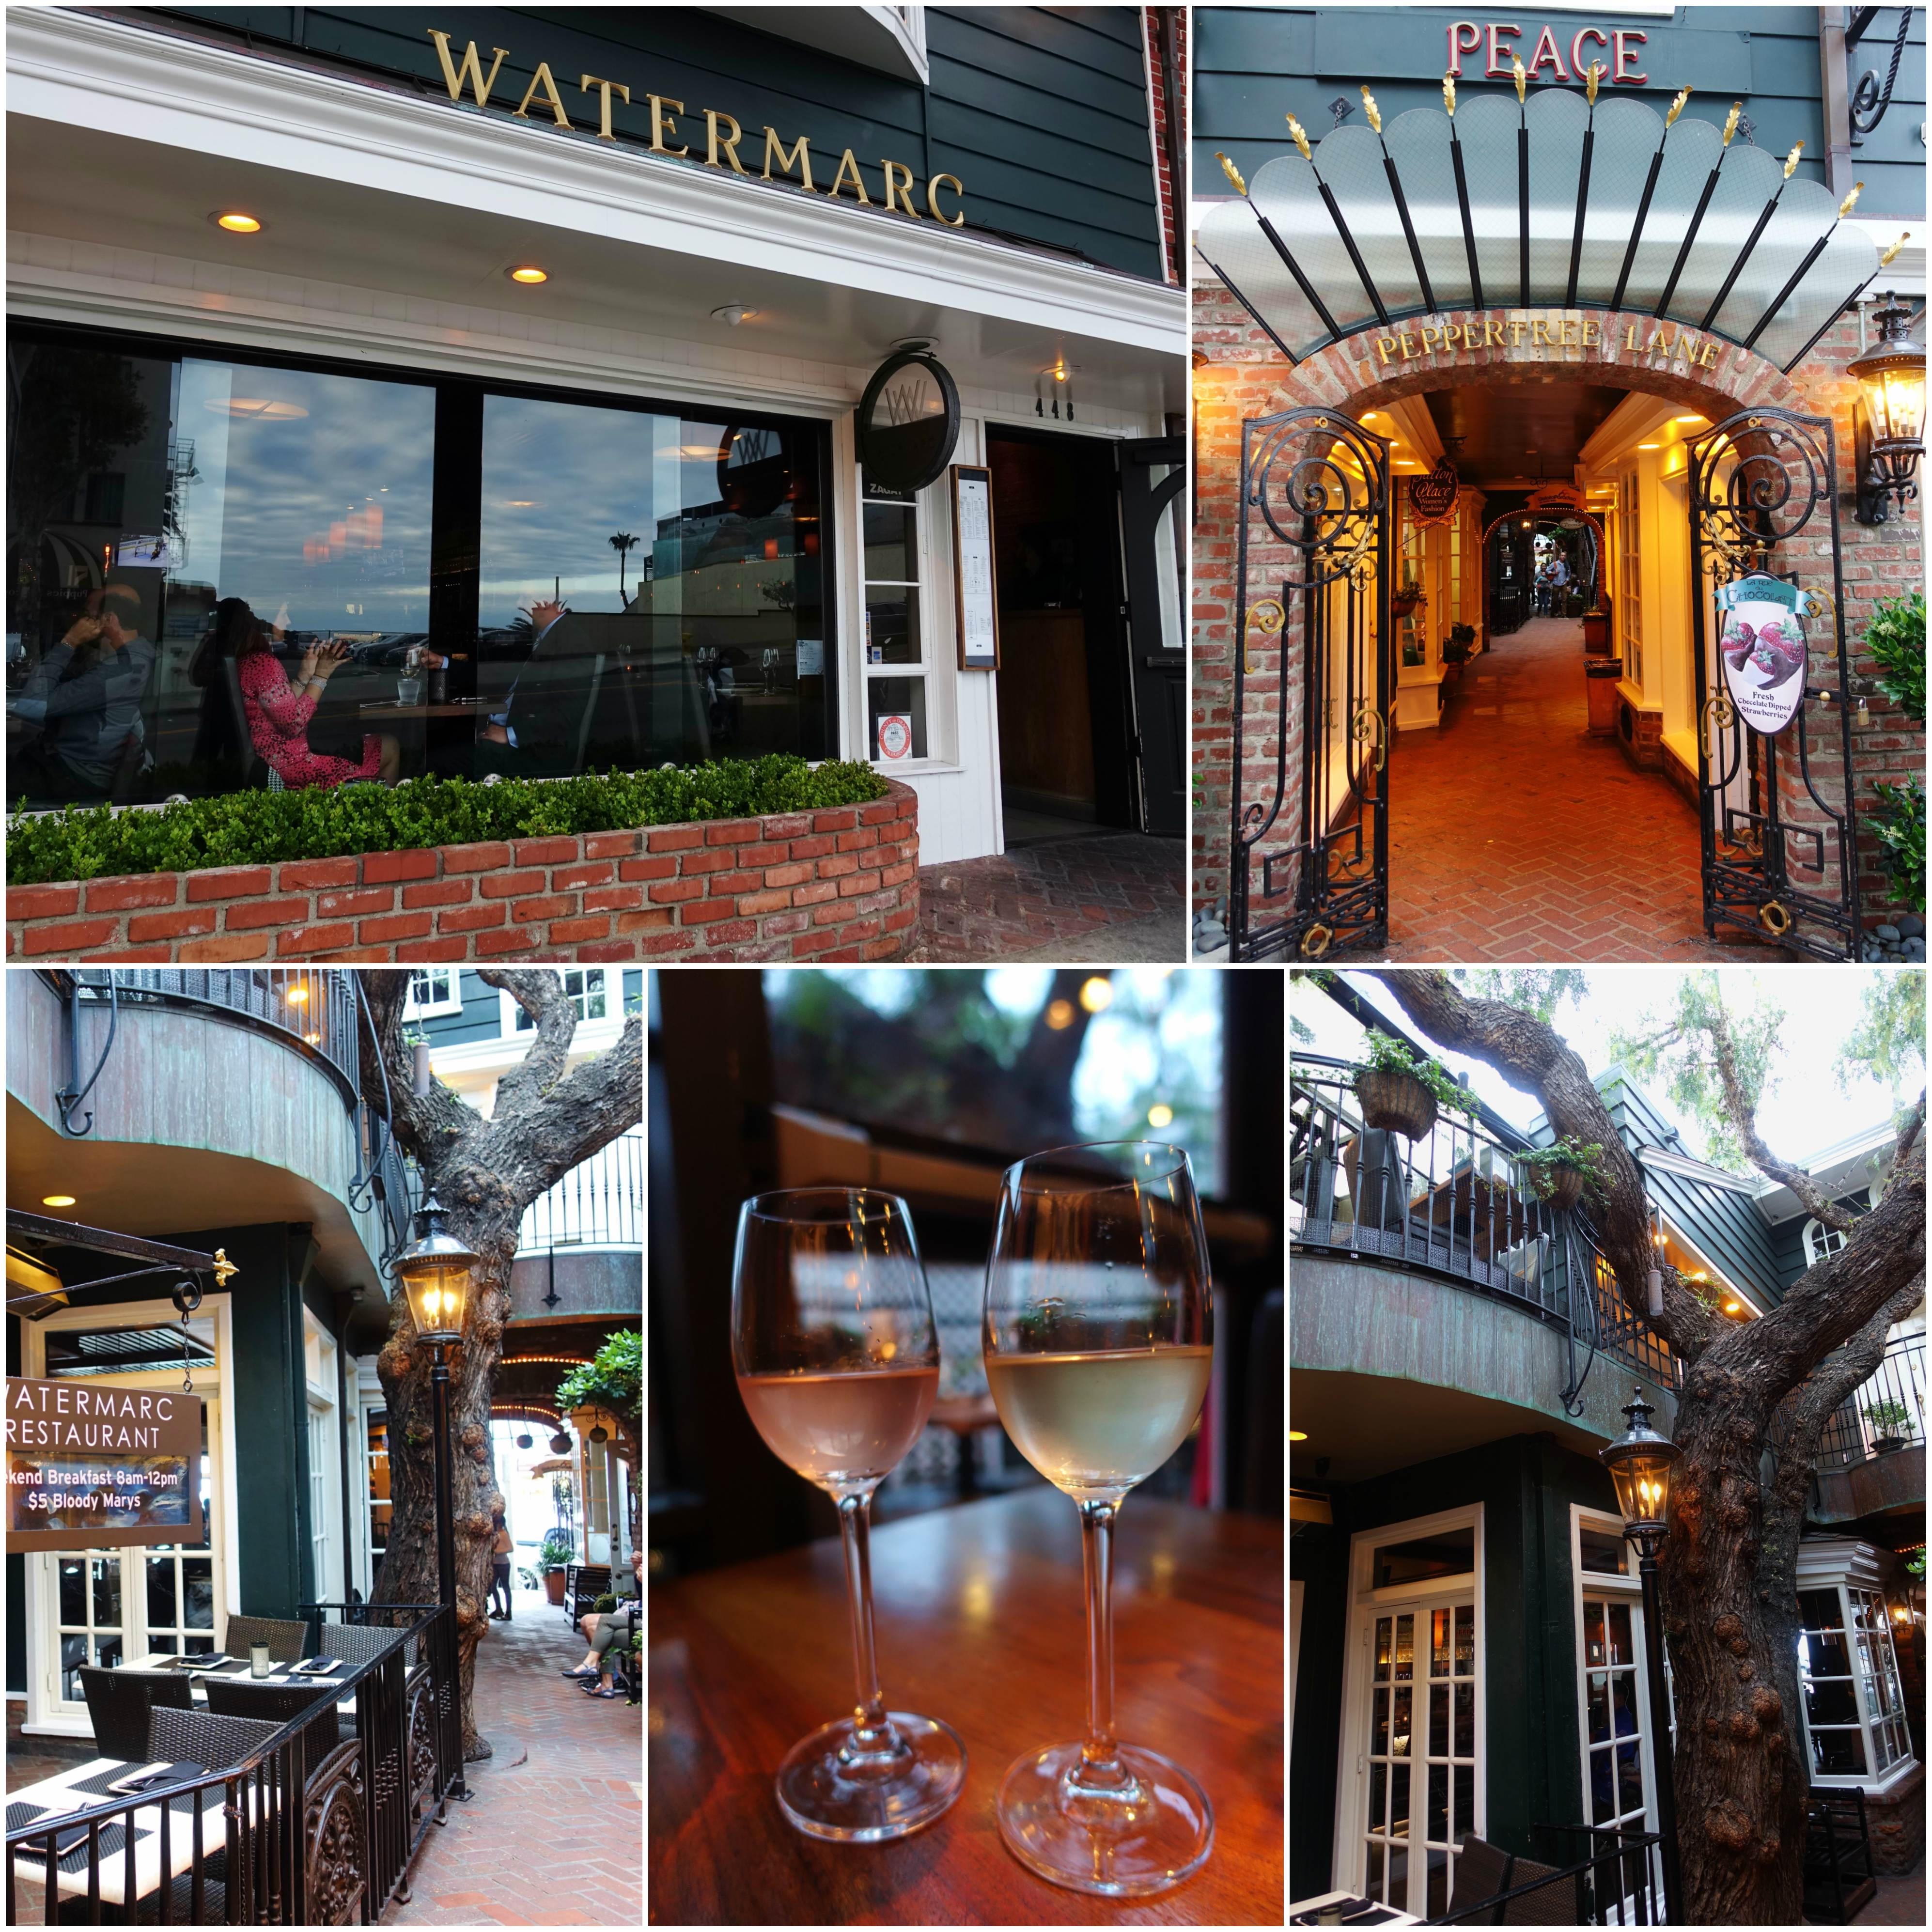 Watermarc Restaurant, Laguna Beach, California